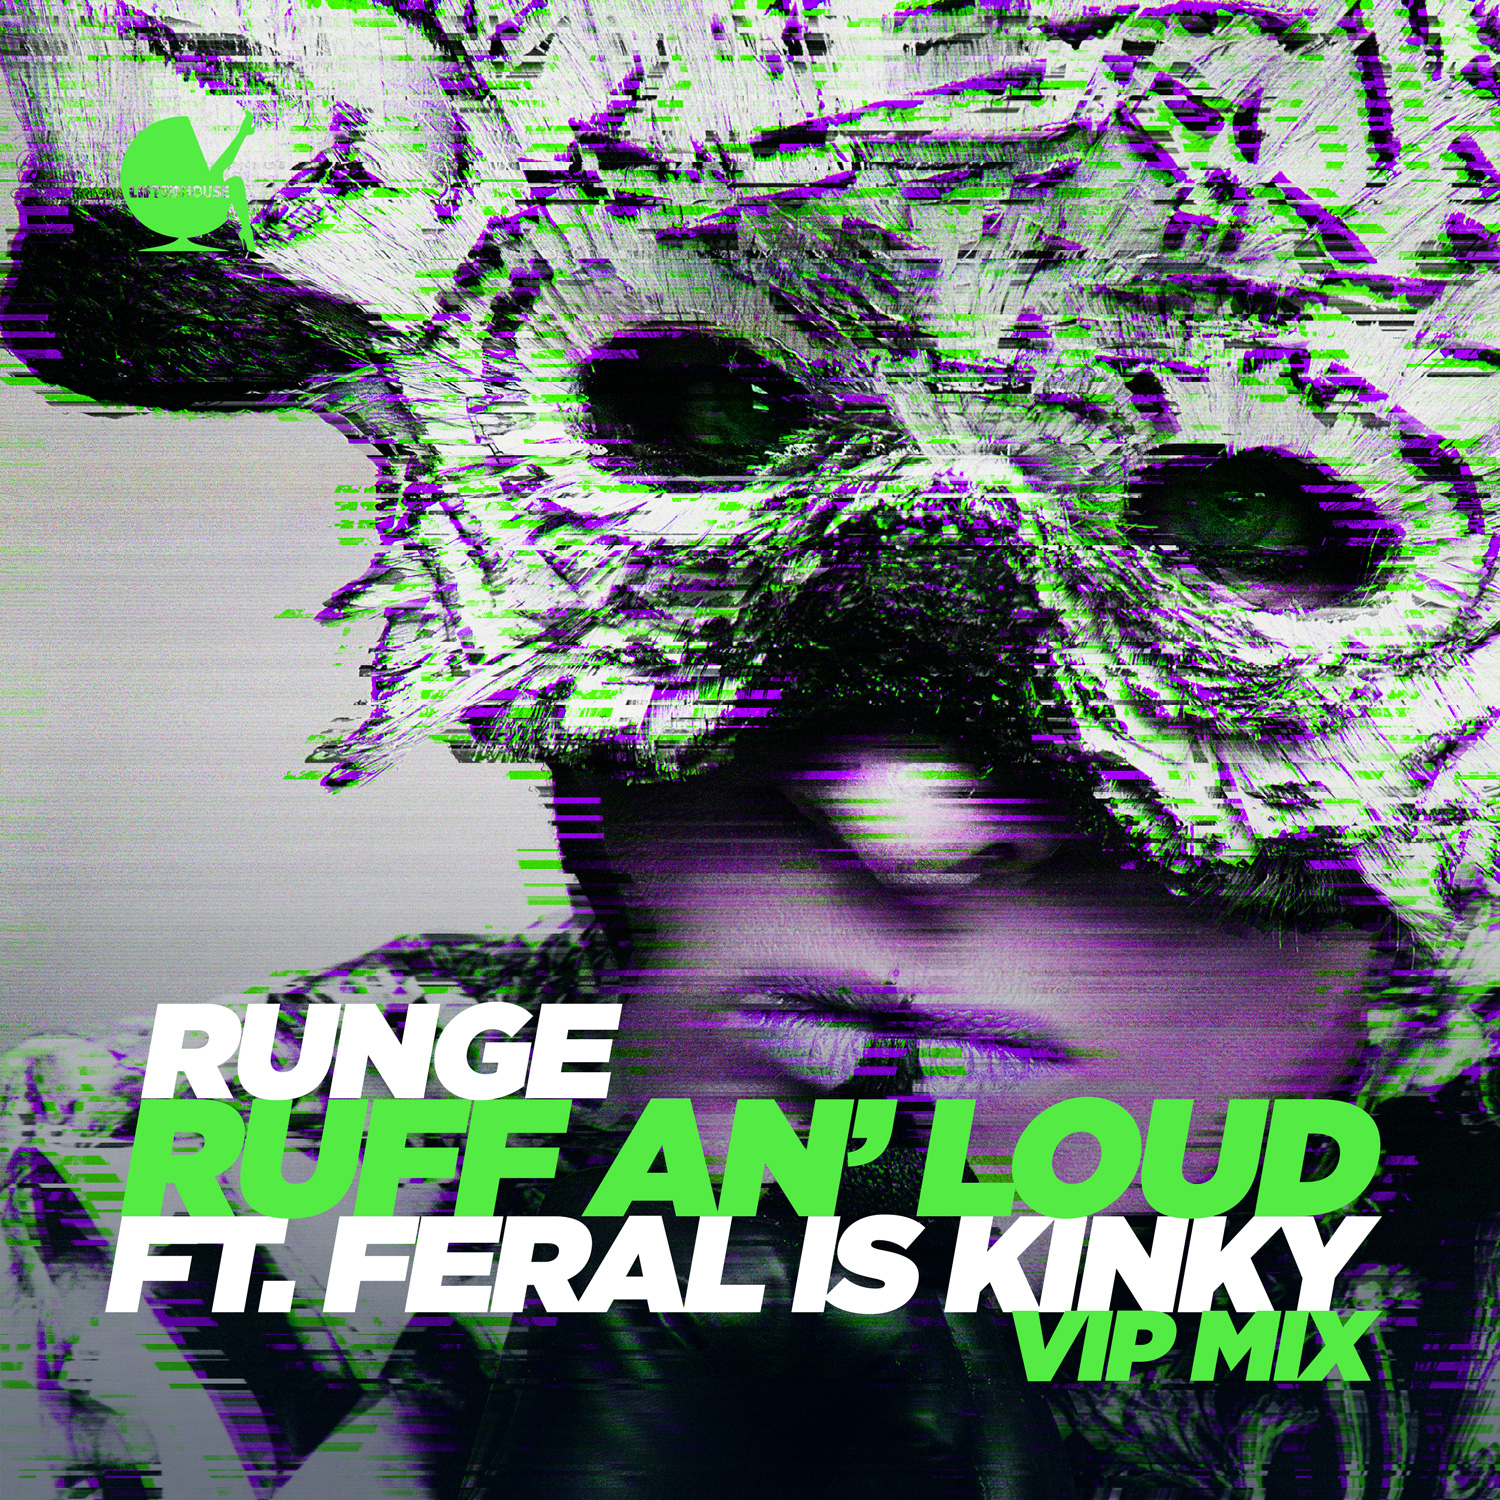 runge - ruff an' loud ft feral is kinky (vip mix)